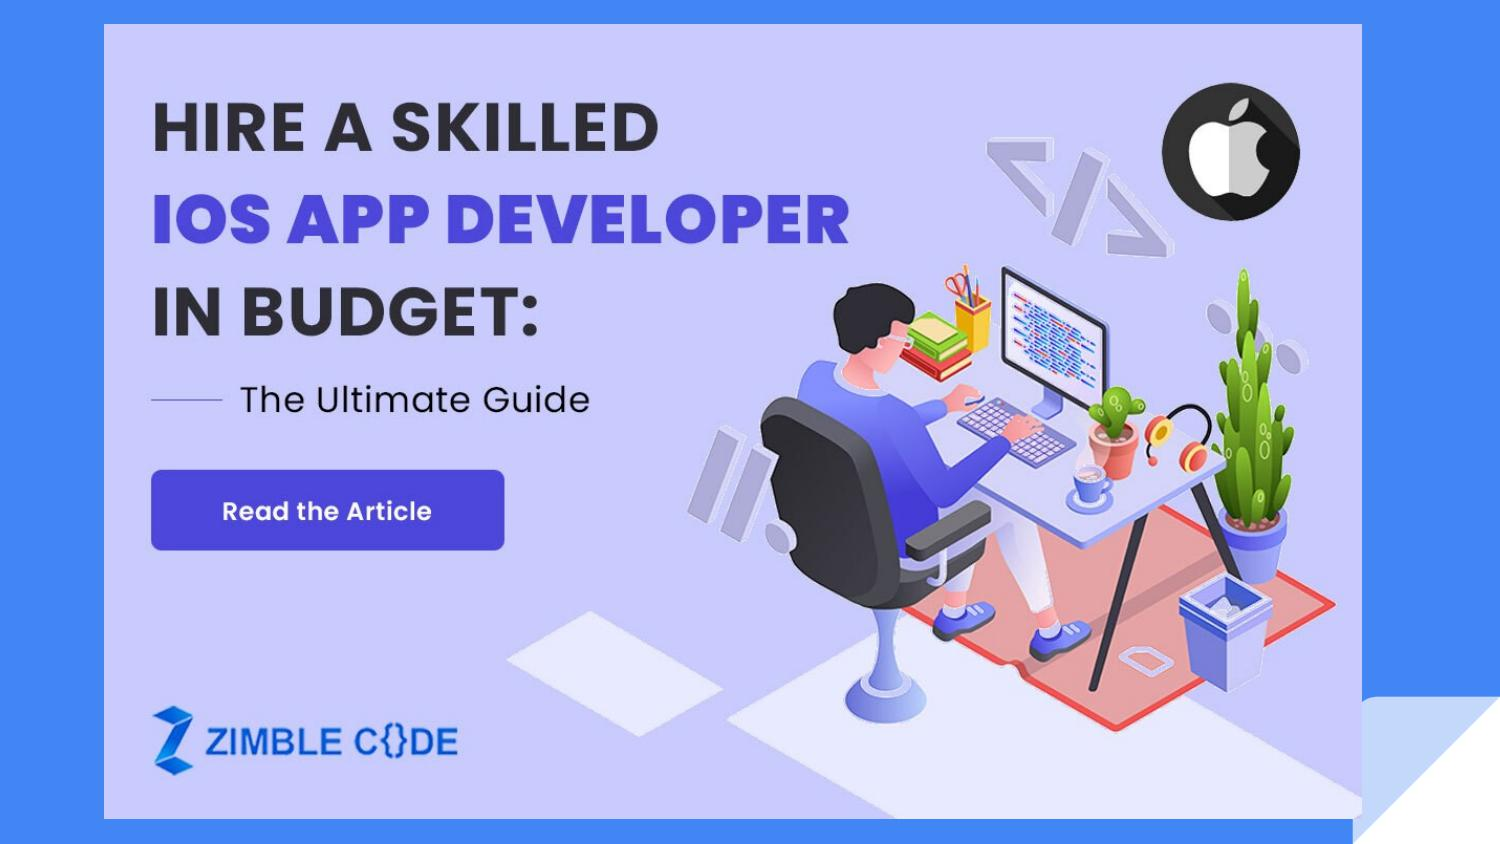 Hire a Skilled iOS App Developer in Budget: The Ultimate Guide